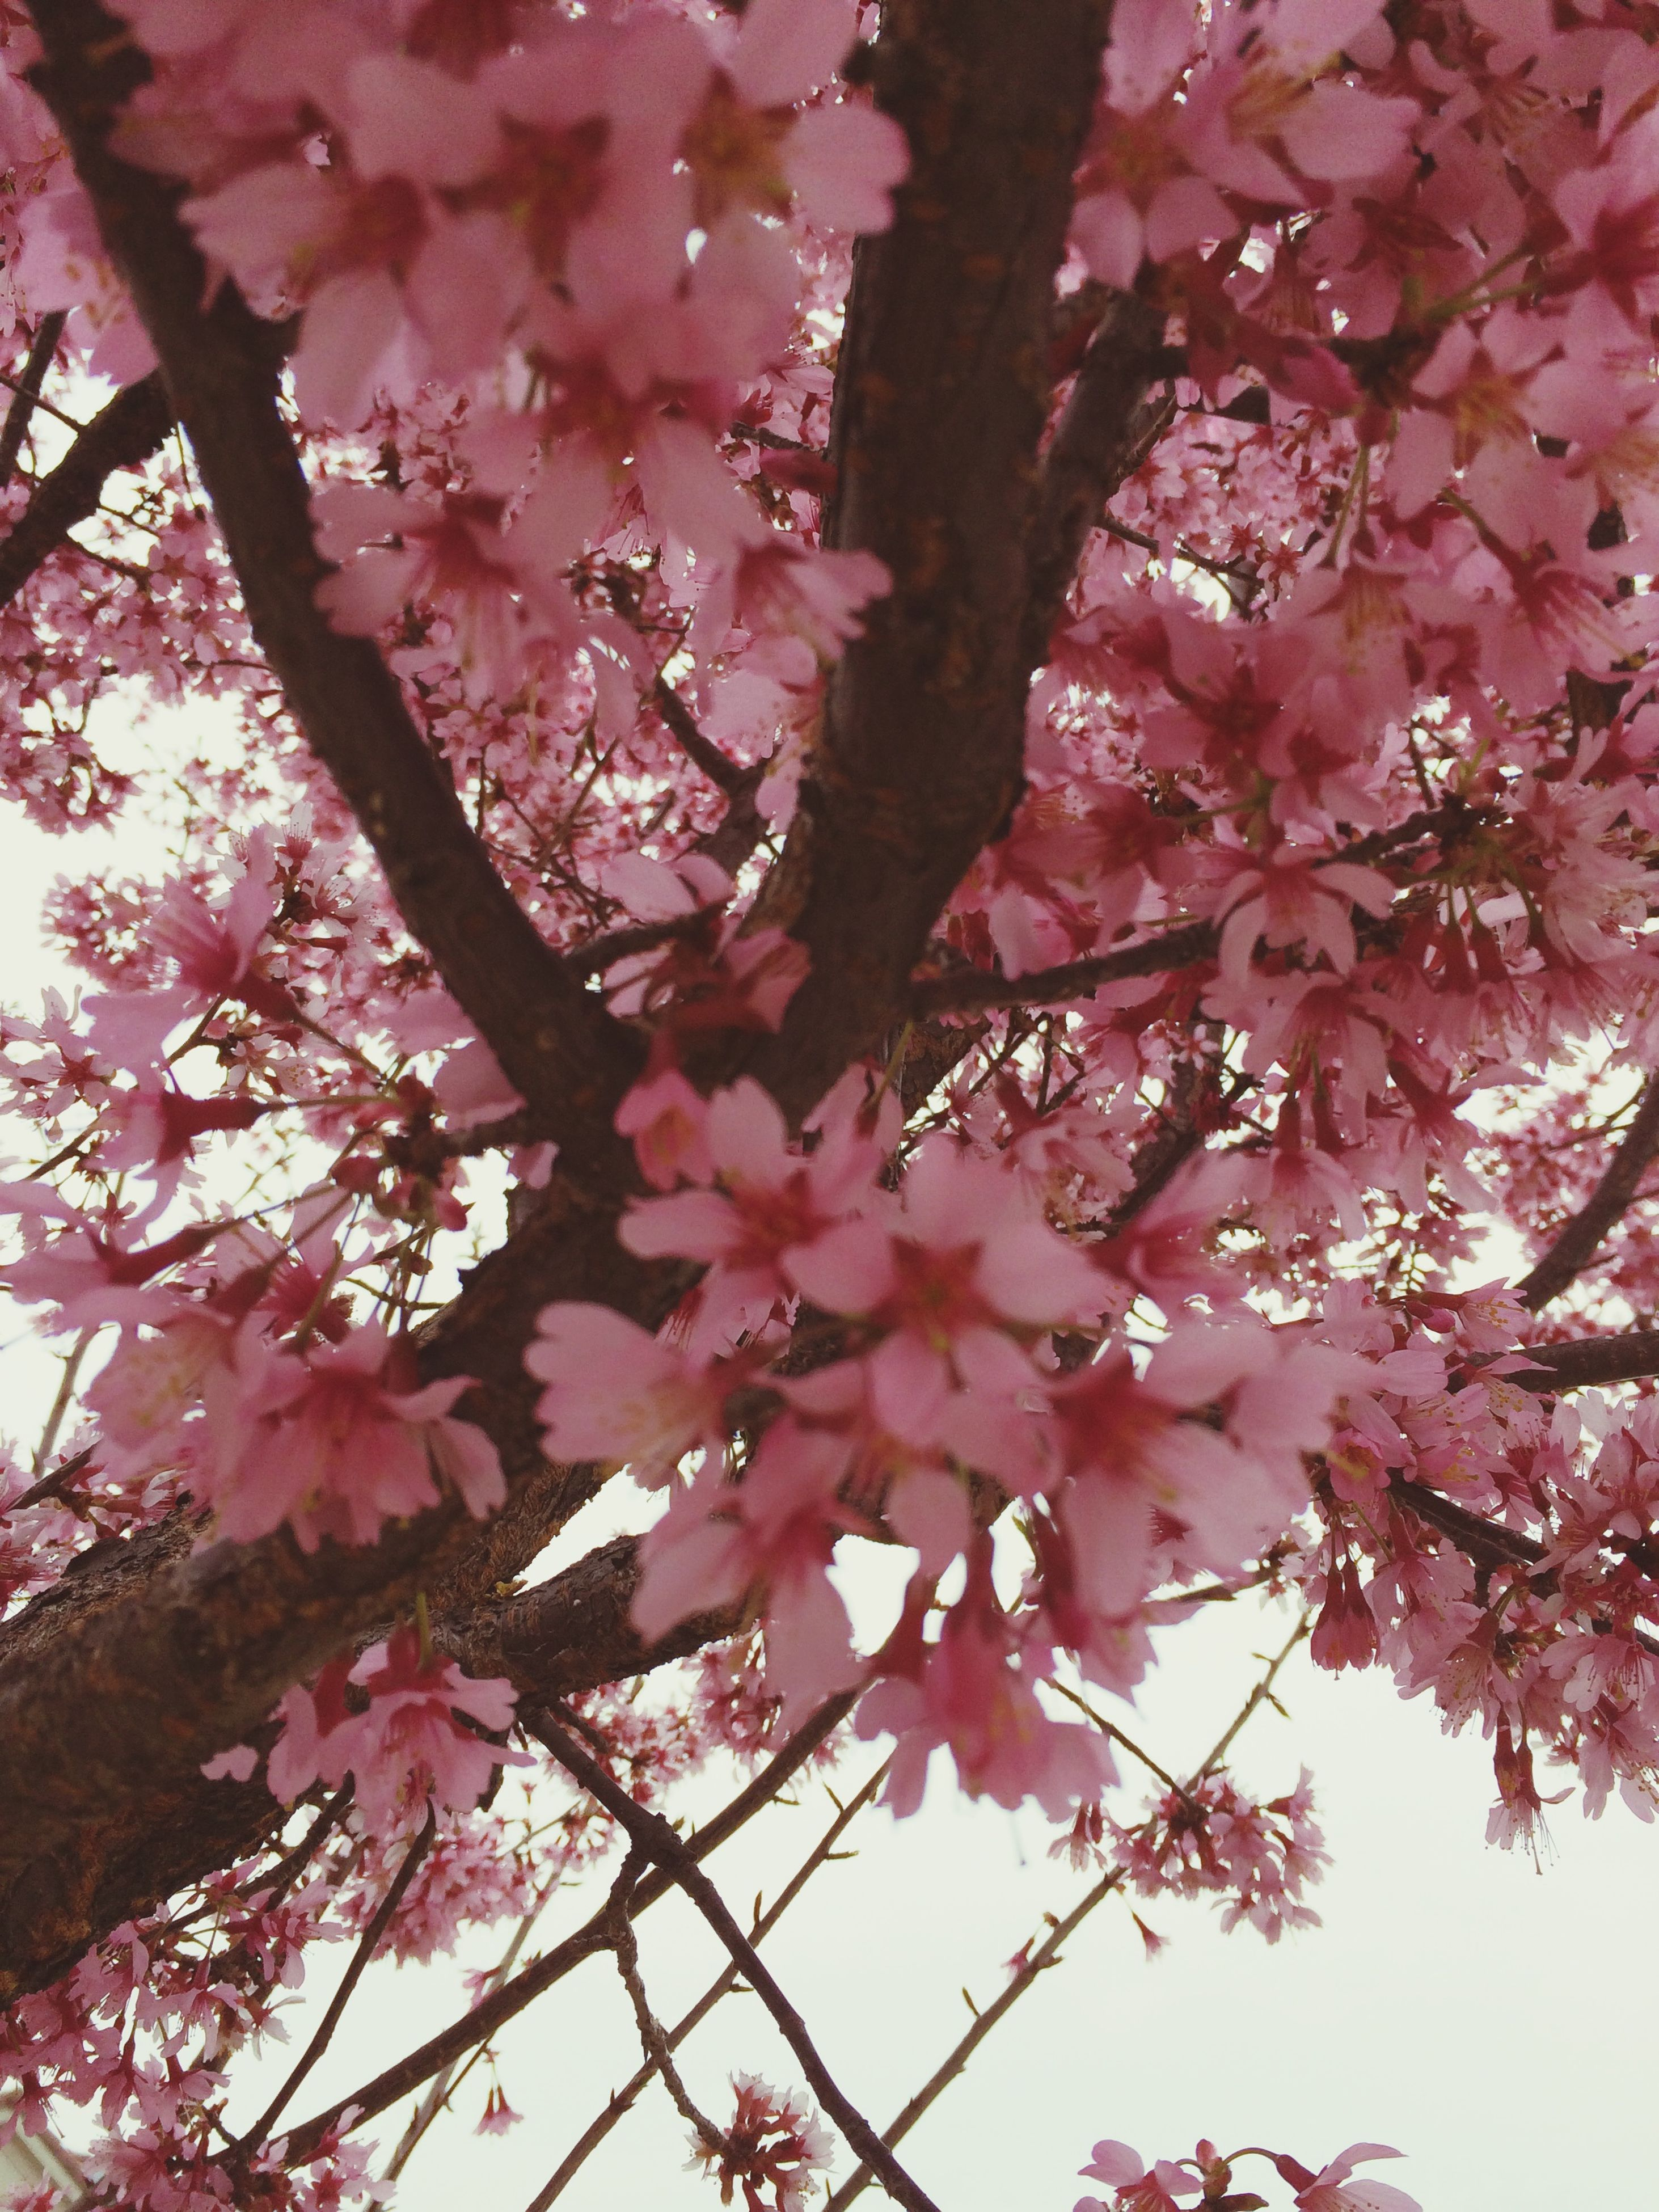 flower, tree, freshness, branch, pink color, growth, beauty in nature, low angle view, fragility, blossom, cherry blossom, nature, cherry tree, pink, springtime, in bloom, blooming, petal, outdoors, day